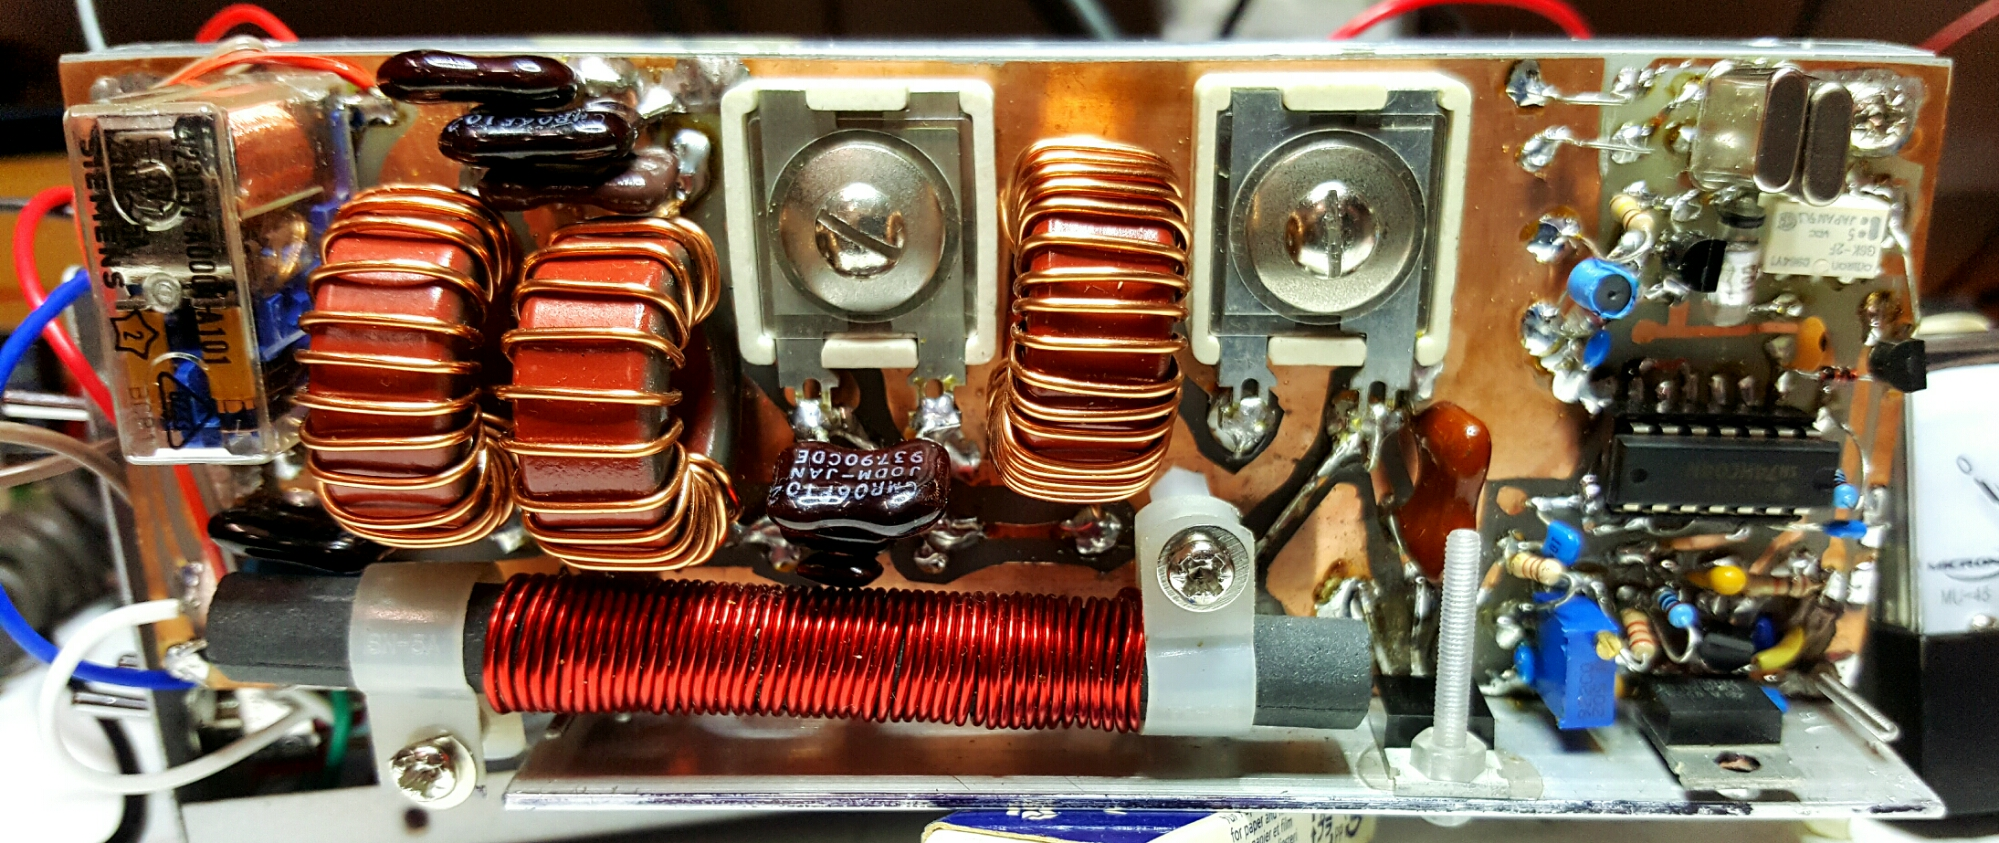 Homebrew 160 Meter Am Cw Transmitter Receiver Vk3hn Simple For A 50 Watt Audio Module Using Lm3876 Jaycar Drives The 275v Tap On 24030v Power Transformer 240v Primary Is Unused